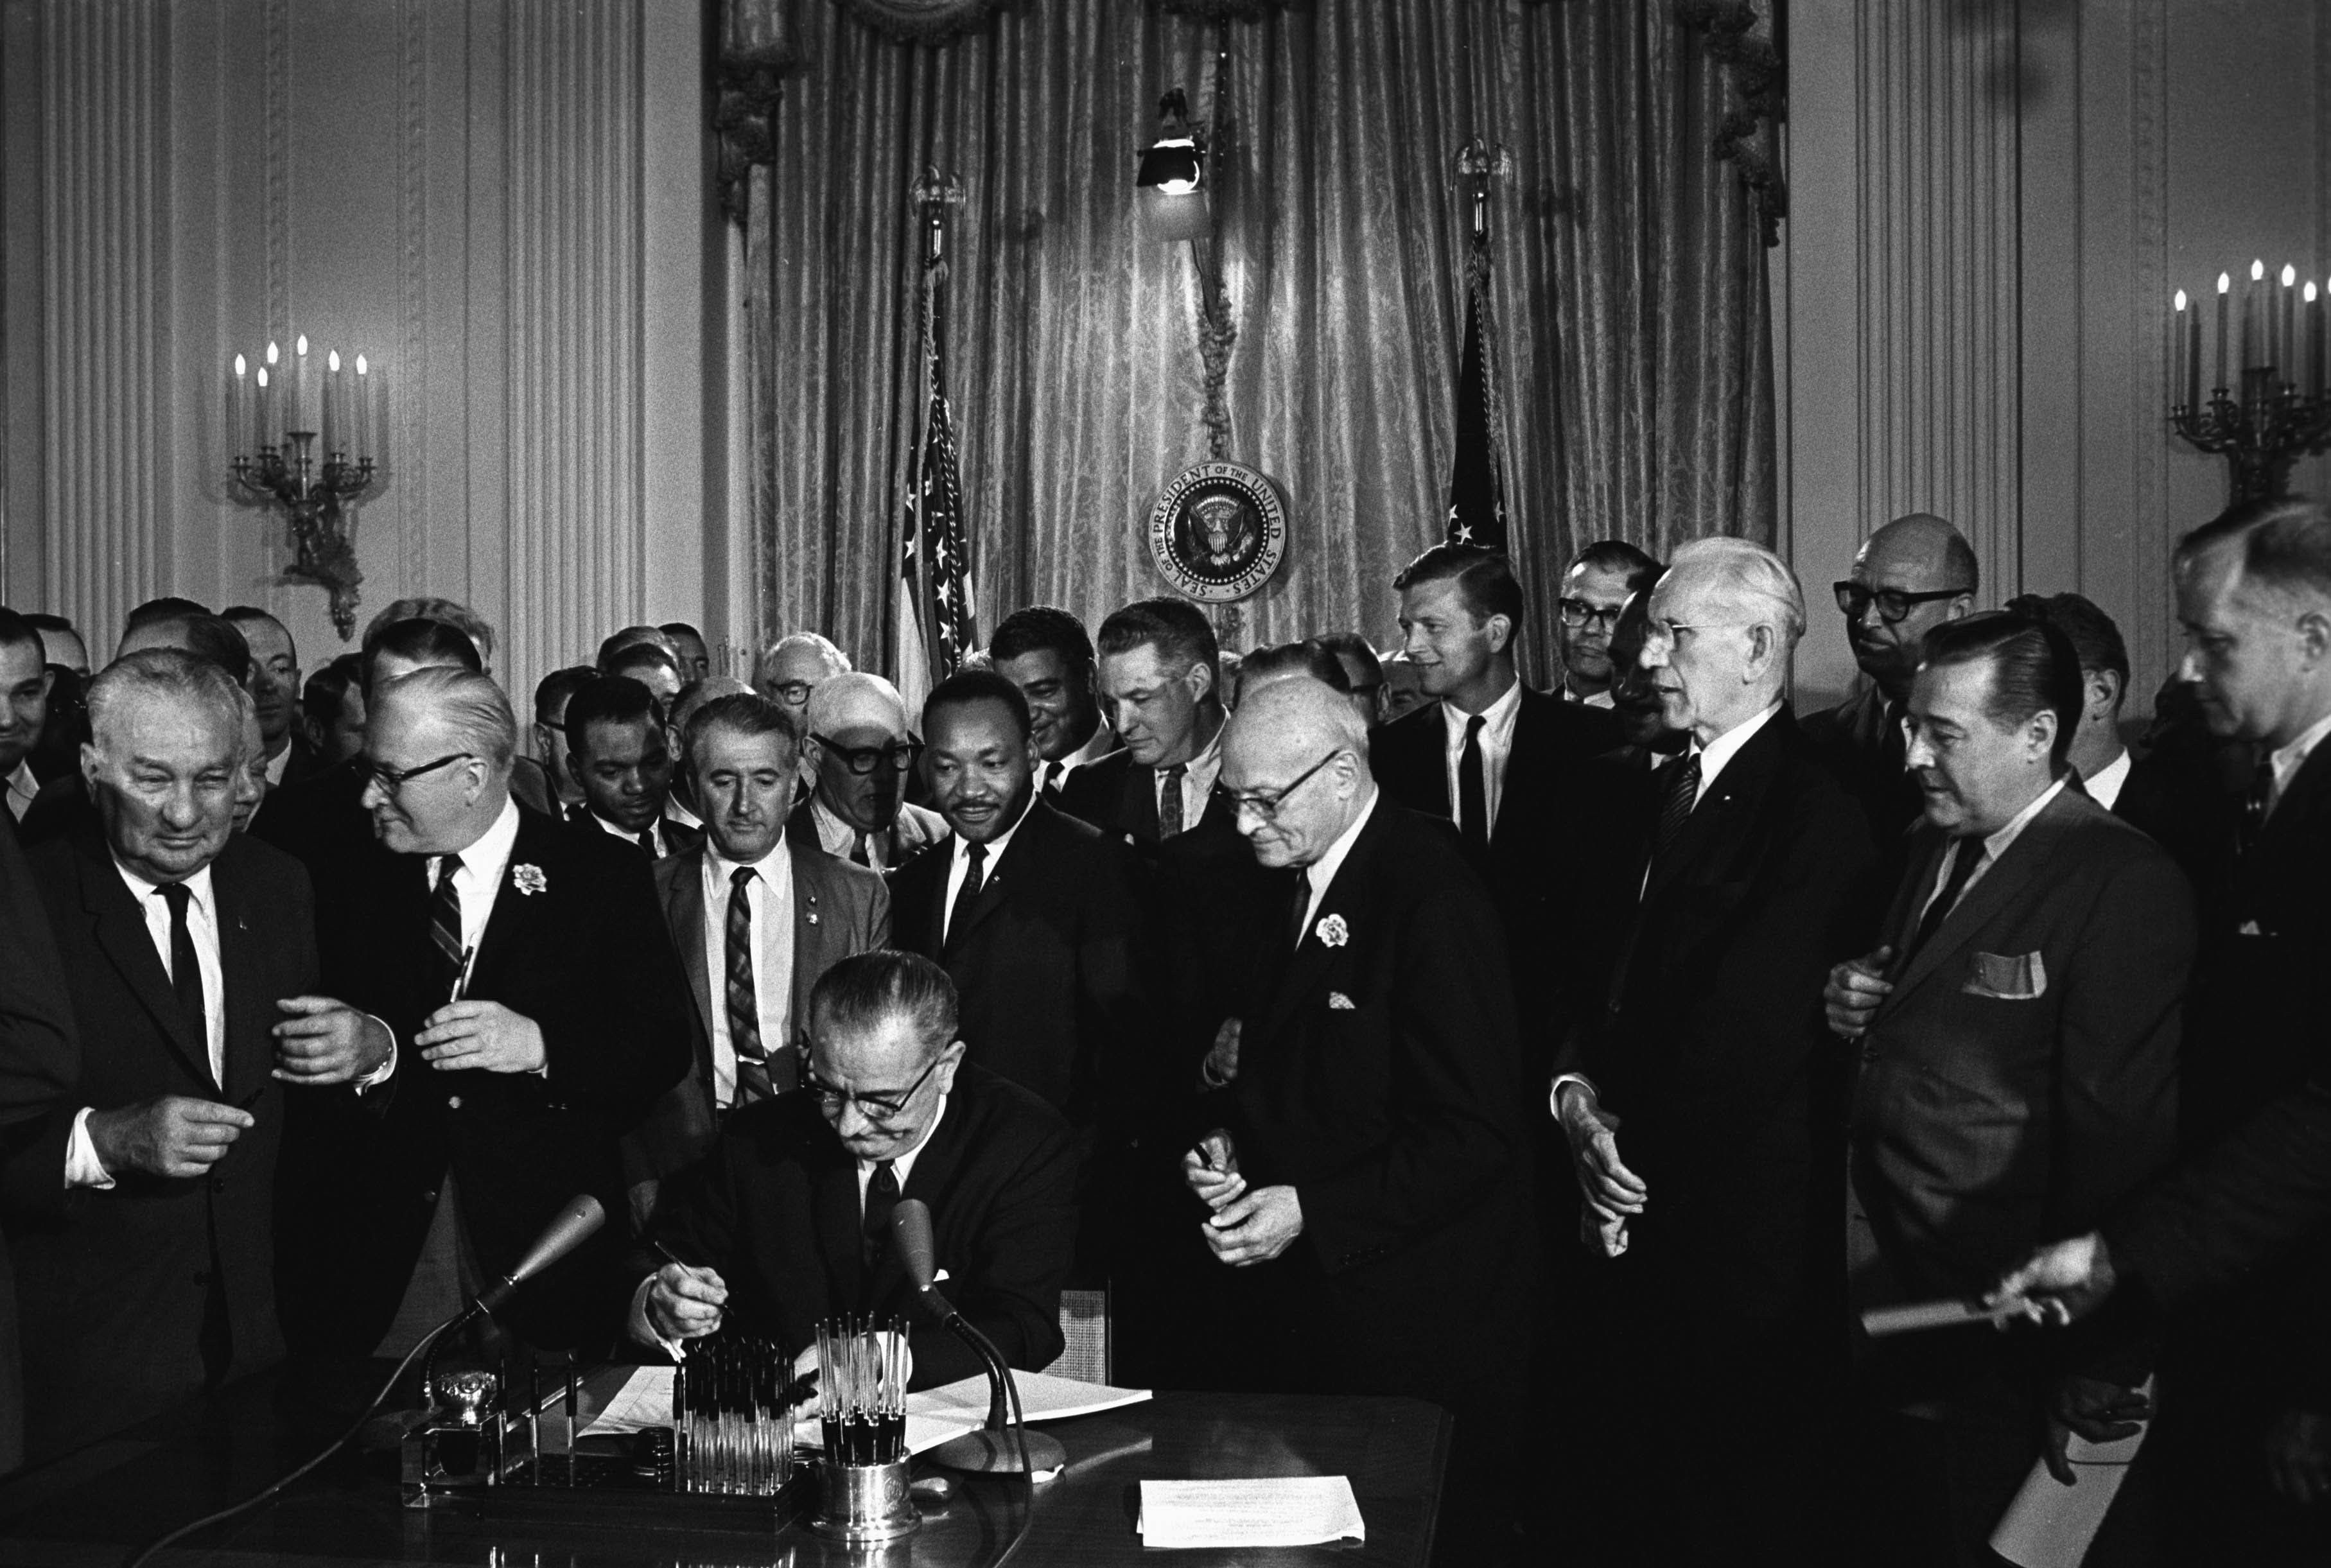 Lyndon Baines Johnson, referred to as LBJ, served as the 36th President of the United States from (1963-1969). Lyndon Johnson signing the Civil Rights Act, 2 July 1964. Martin Luther king Jr looks on the President. (Photo by: Photo12/UIG via Getty Images)